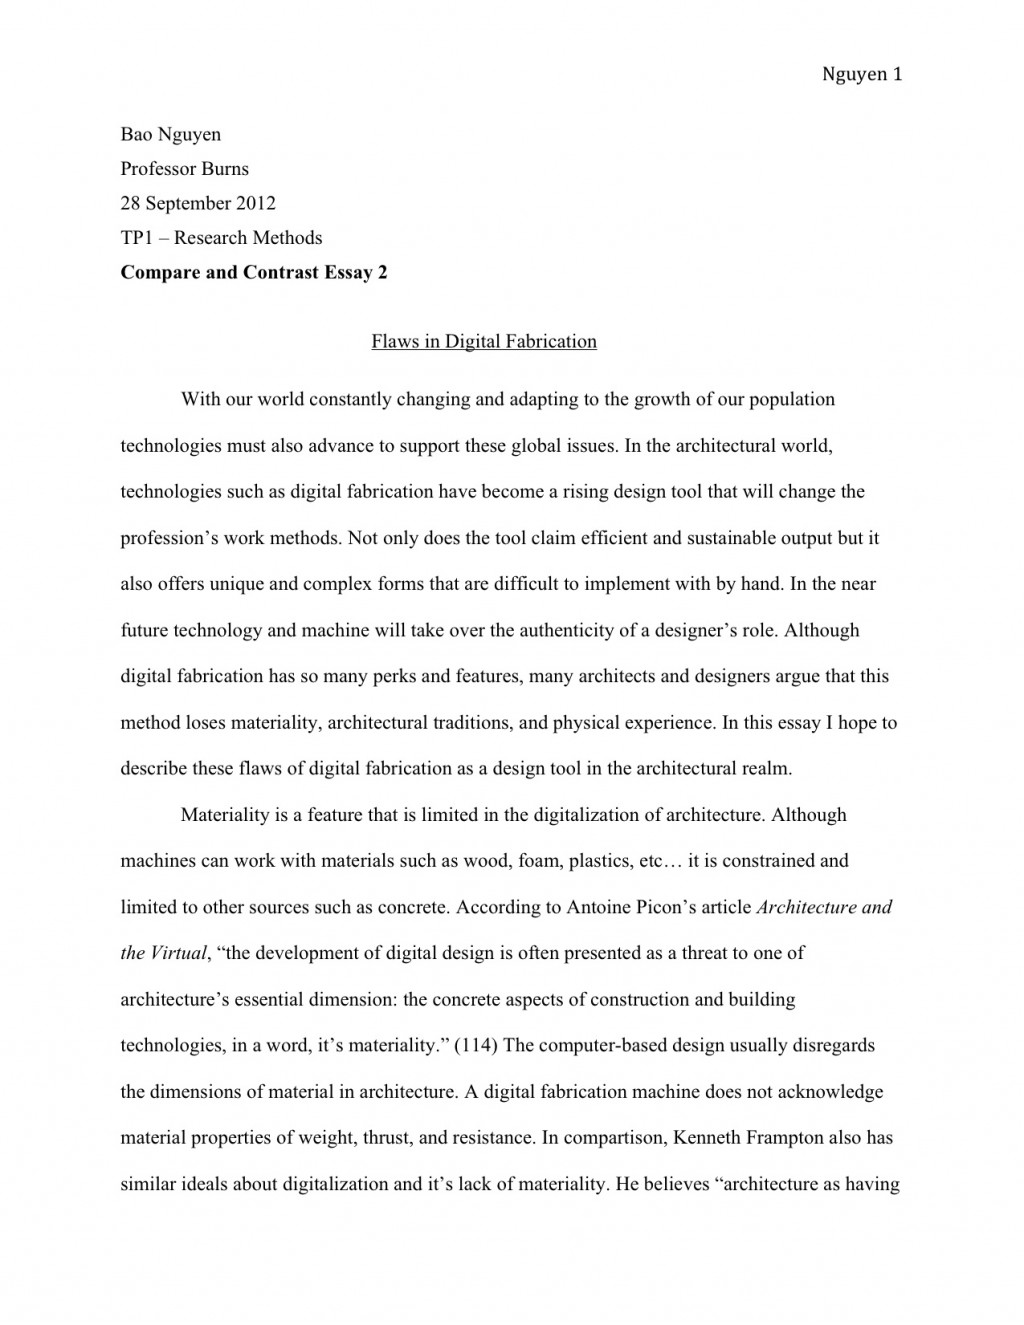 005 How To Write An Essay Example Tp1 3 Shocking In Mla Format Word 2013 About Yourself For College Application Large